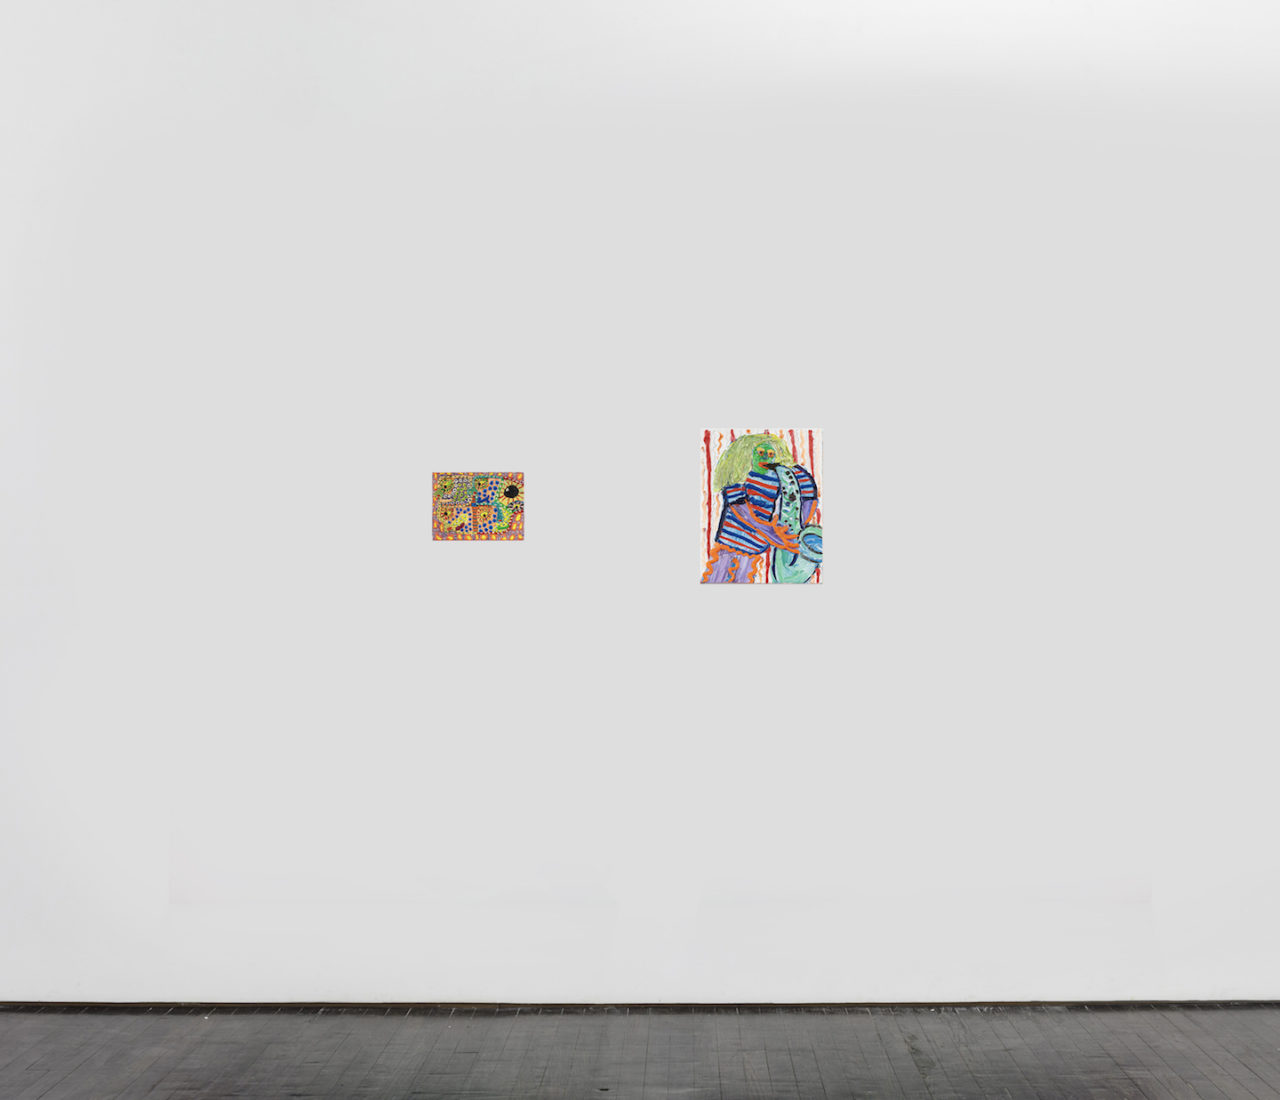 Noah's Ark | Installation view, Matthew Clifford Green